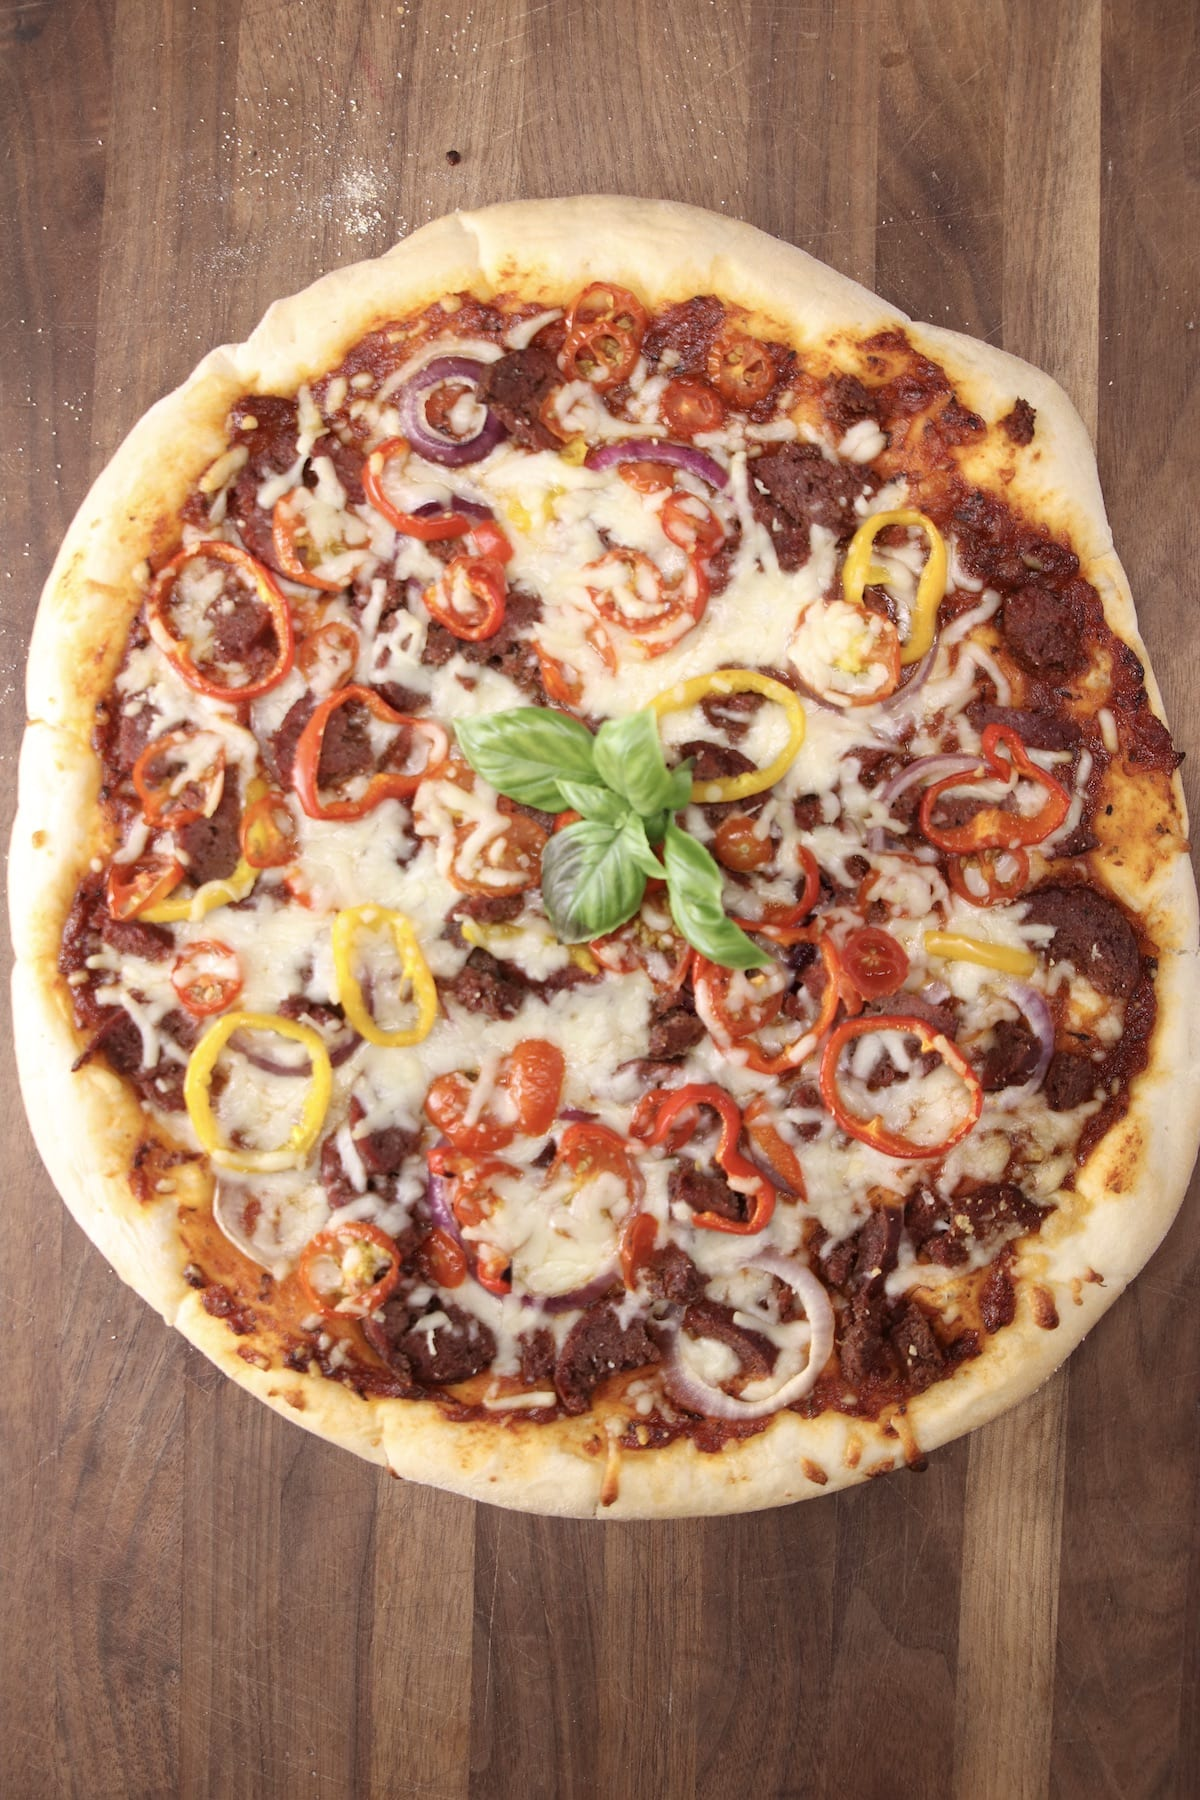 Grilled pizza with smoked sausage, peppers and onions